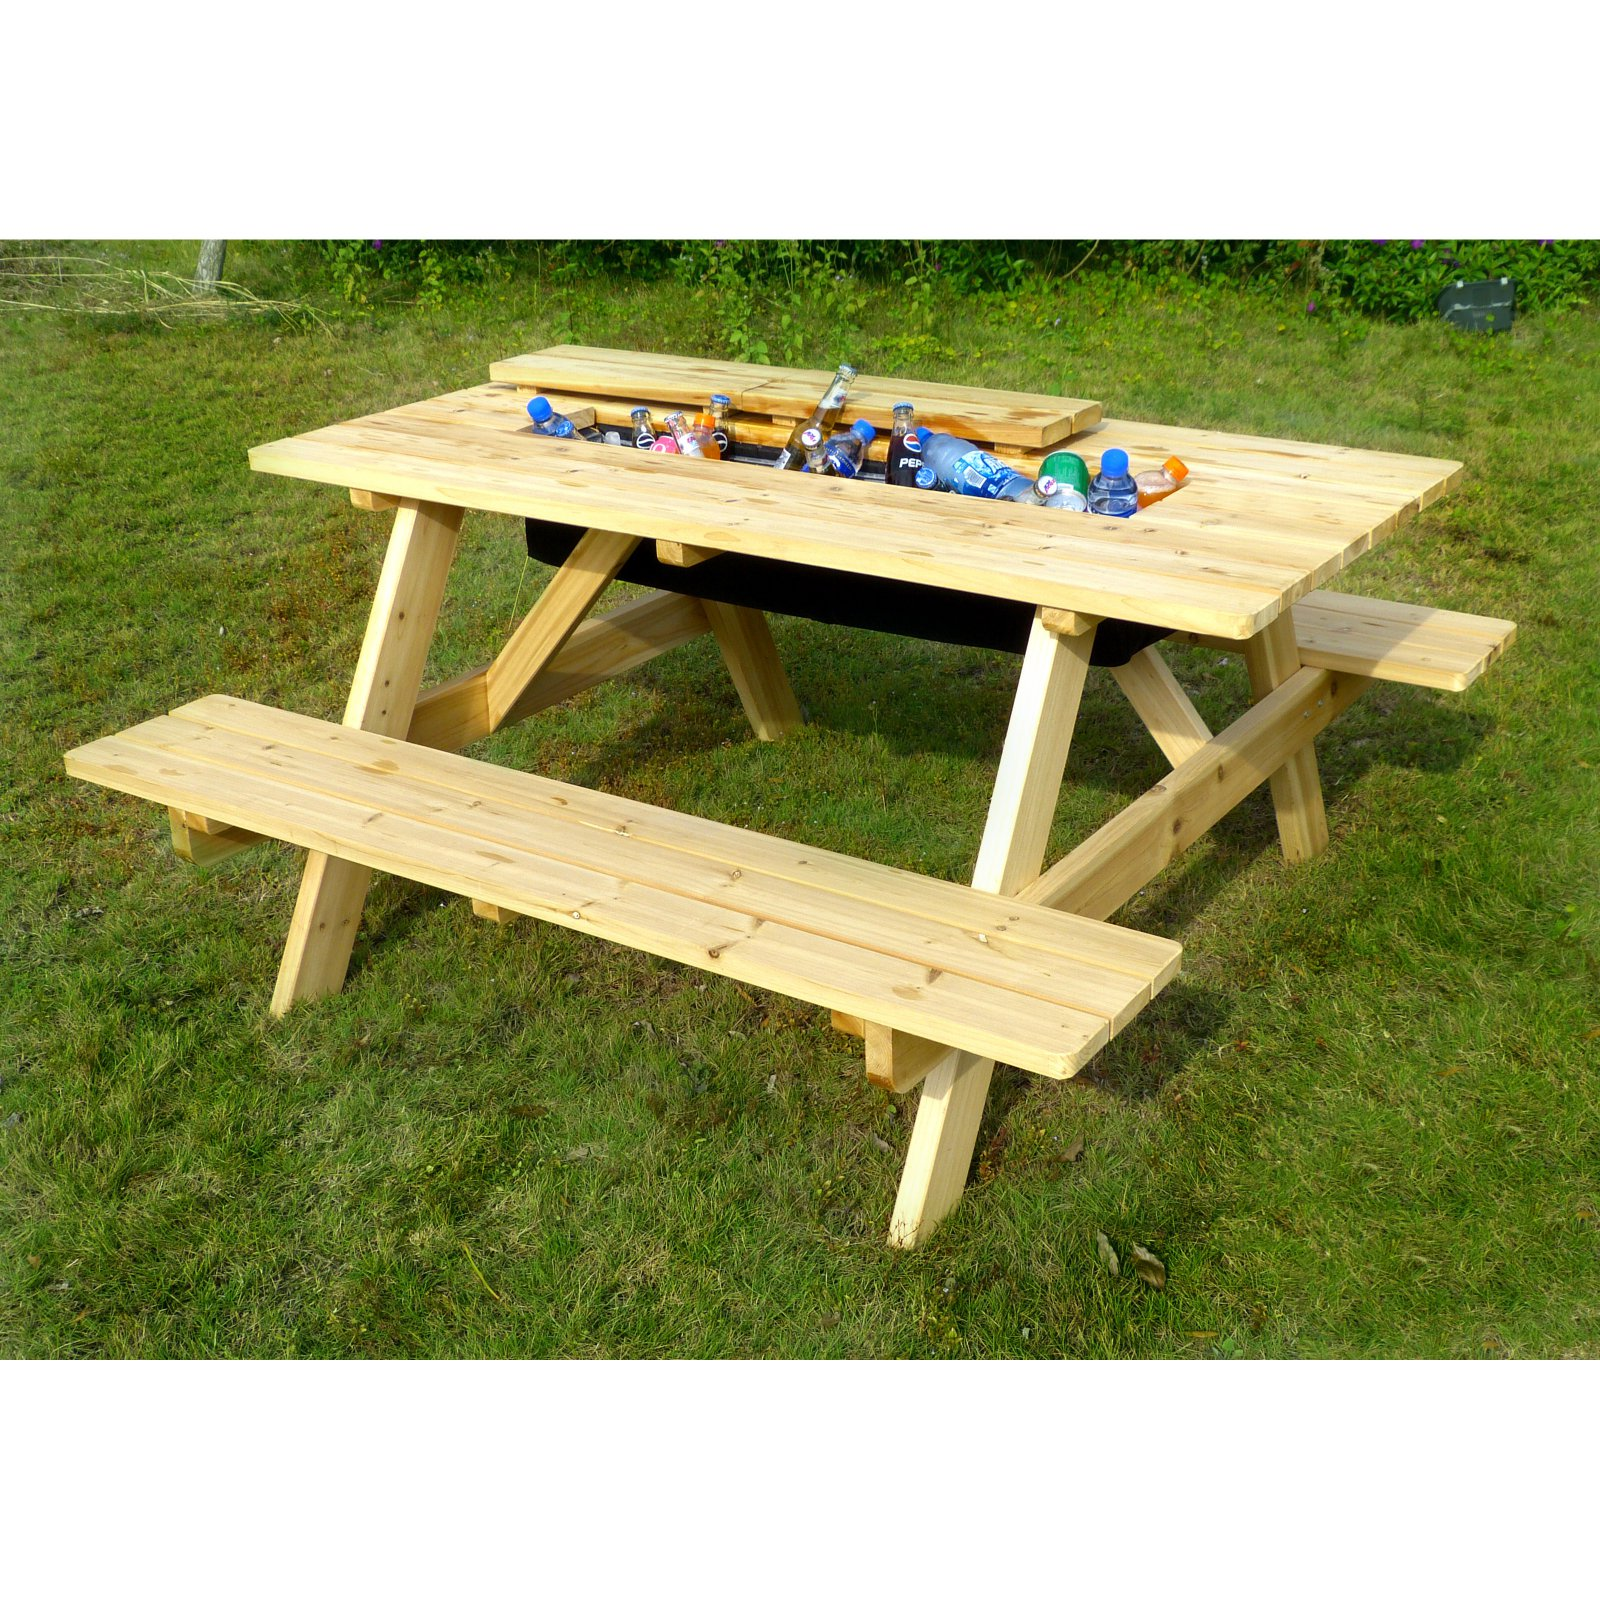 Cooler Picnic Table Kit by Northbeam